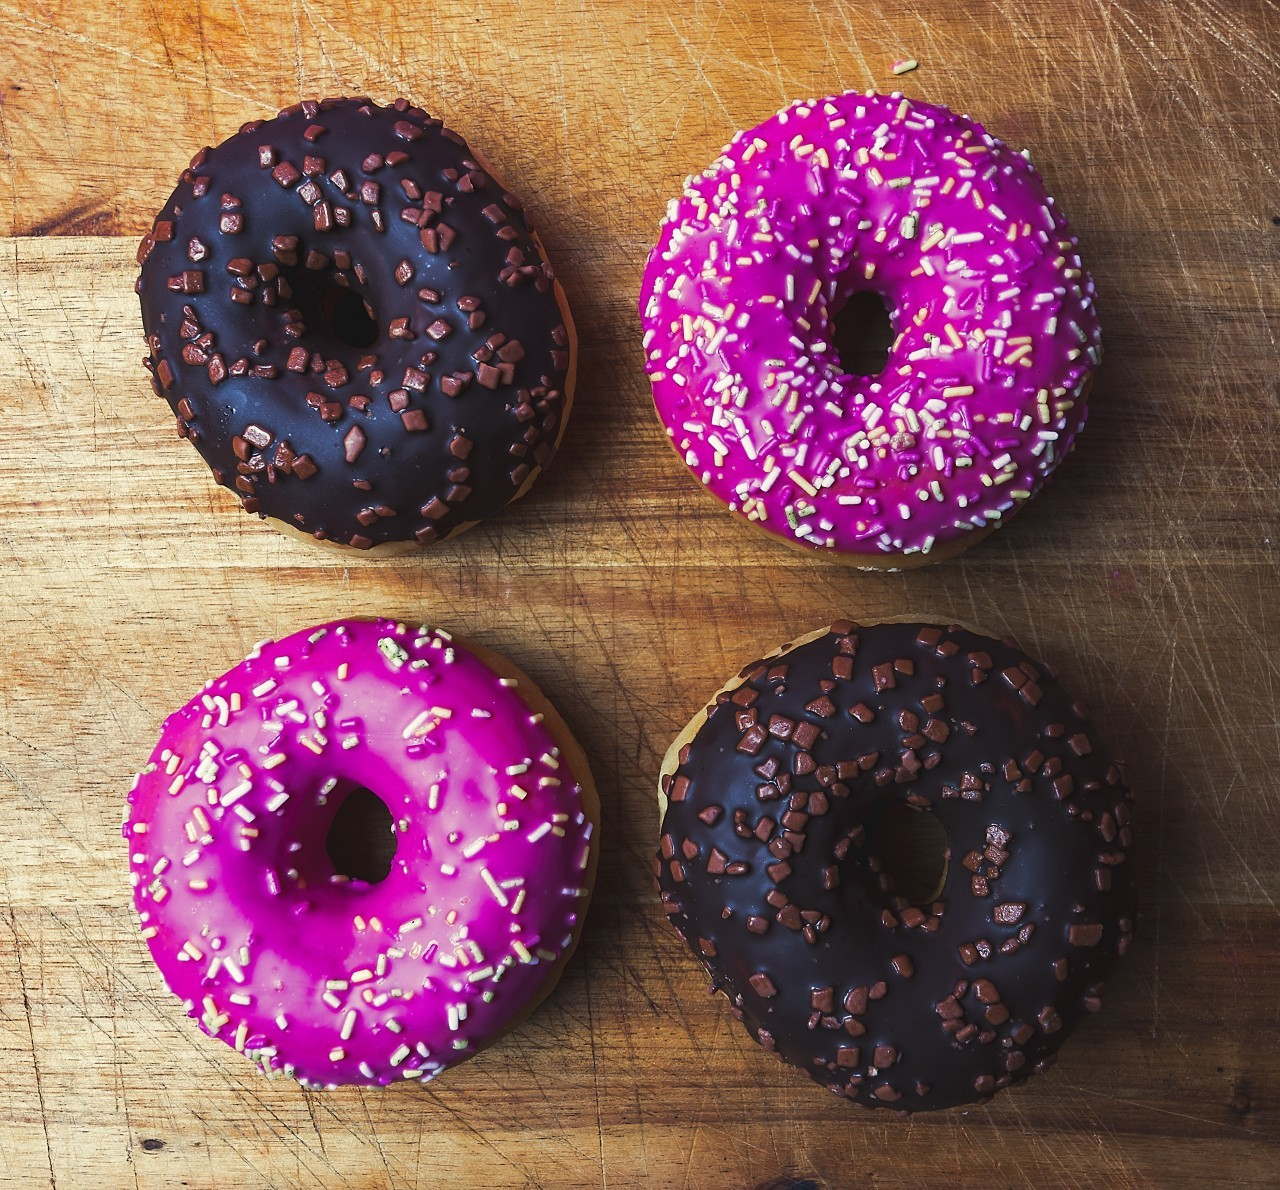 two chocolate donuts and two pink donuts